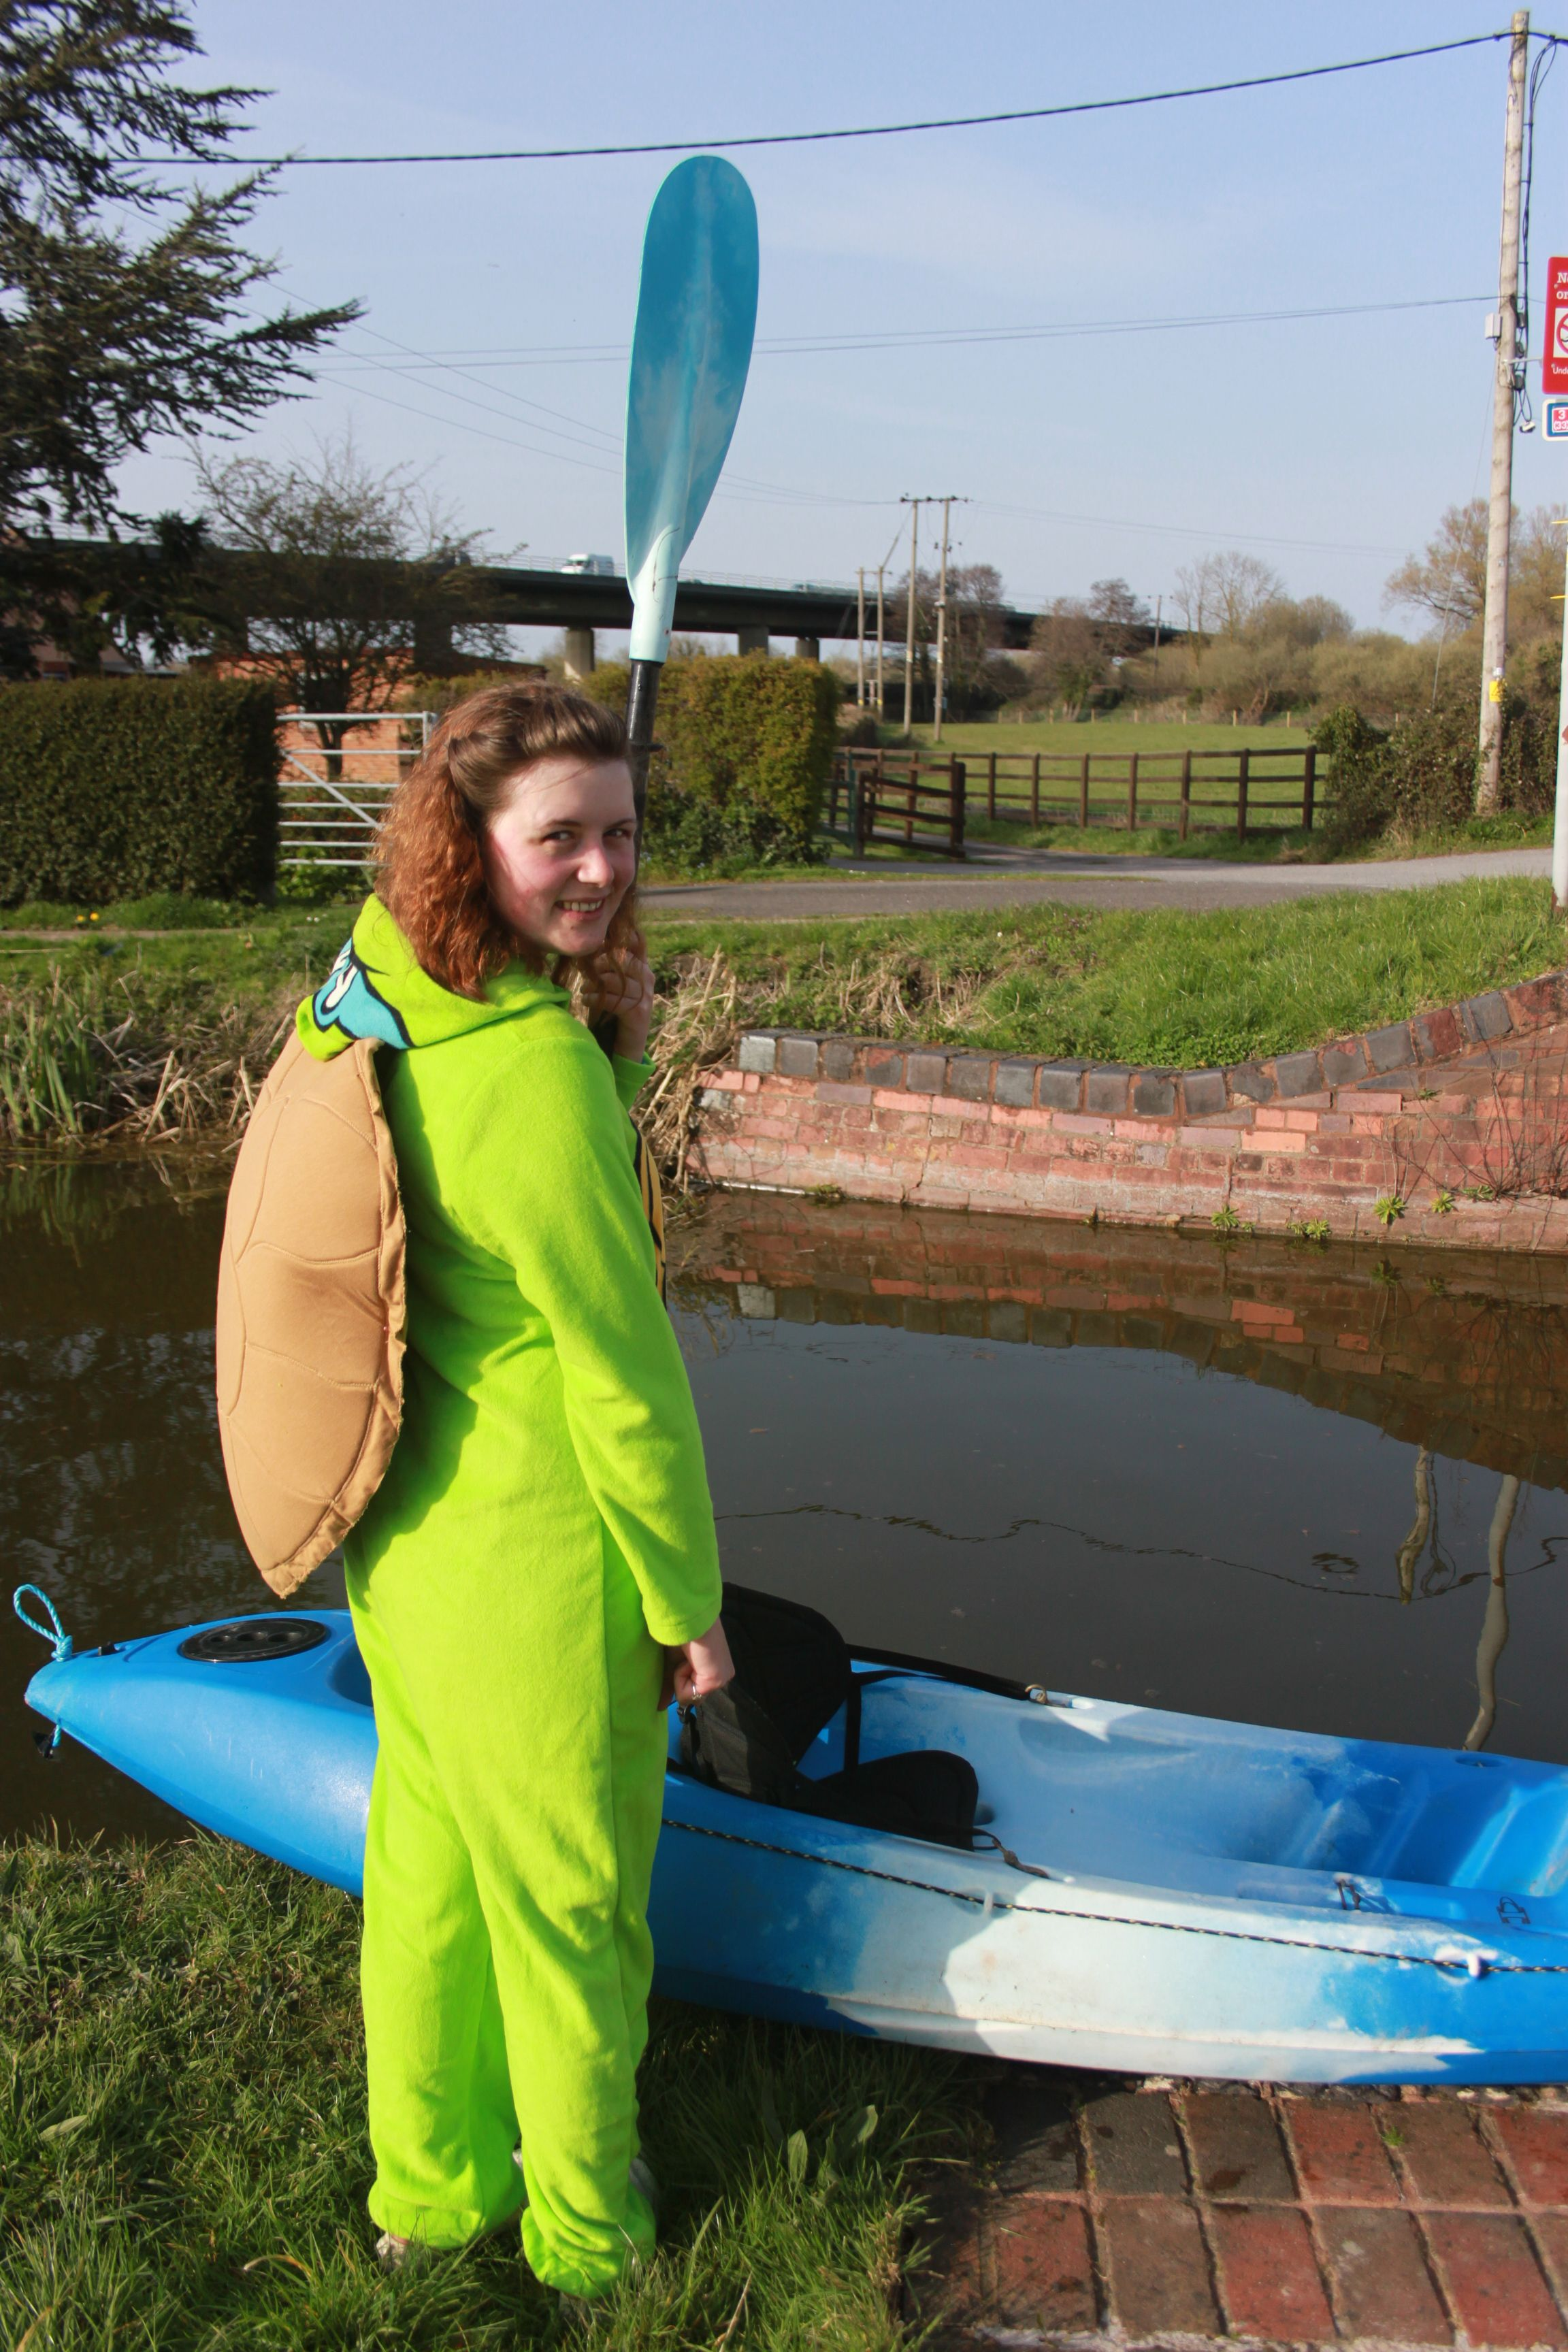 Emily Easman, 19, in costume as she prepares to kayak down the canal